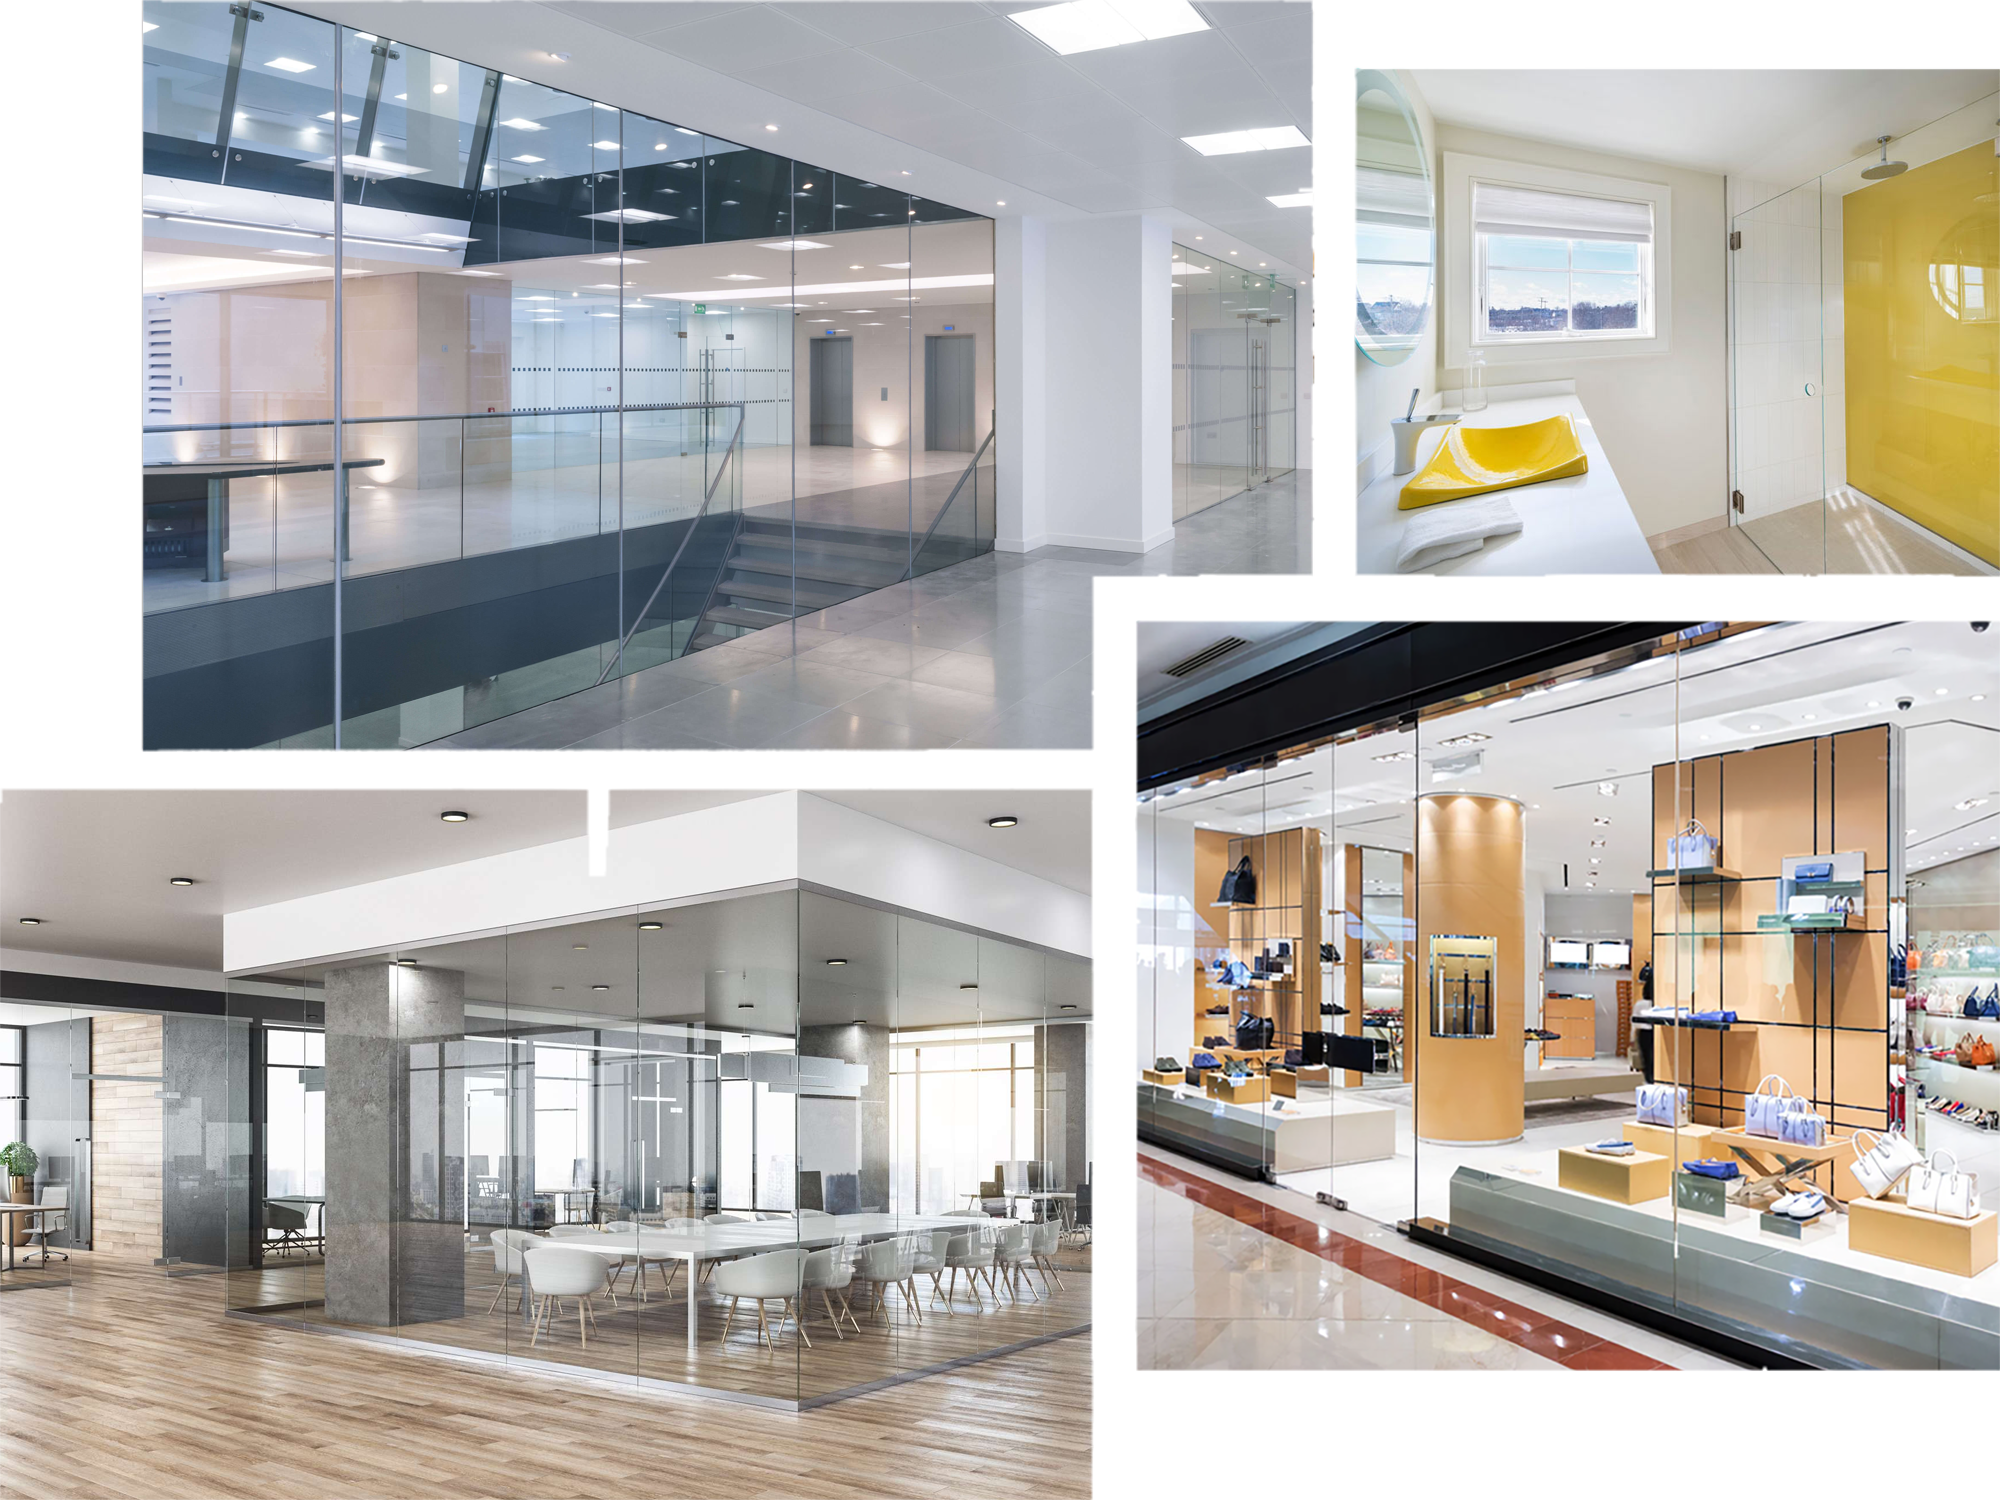 Collage of glass images - glass office walls, glass shower walls, and retail displays